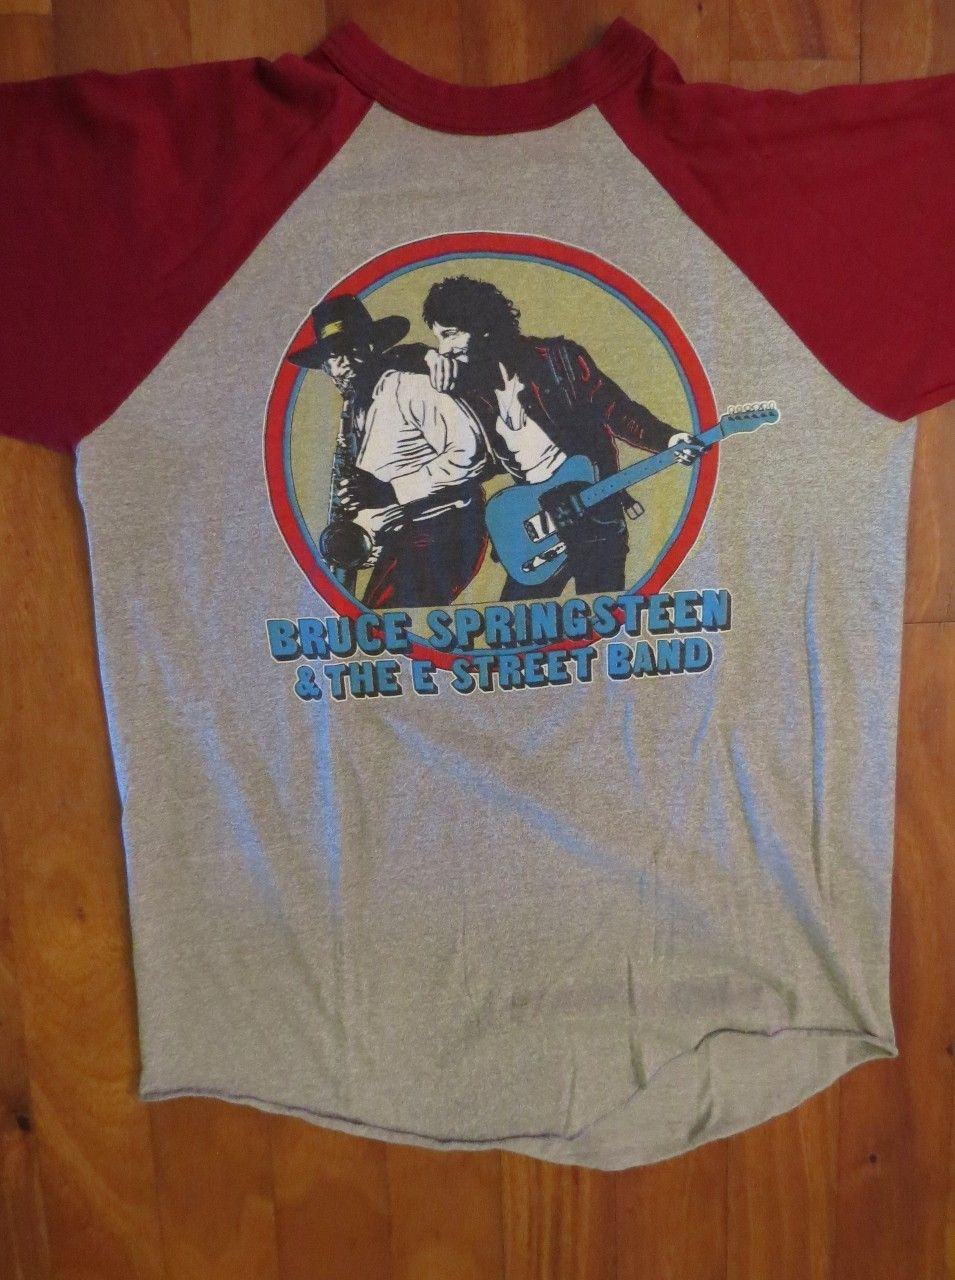 8508a20a Vintage 80's Original Bruce Springsteen and the E Street Band Concert Tour  80'-81' Jersey T-Shirt